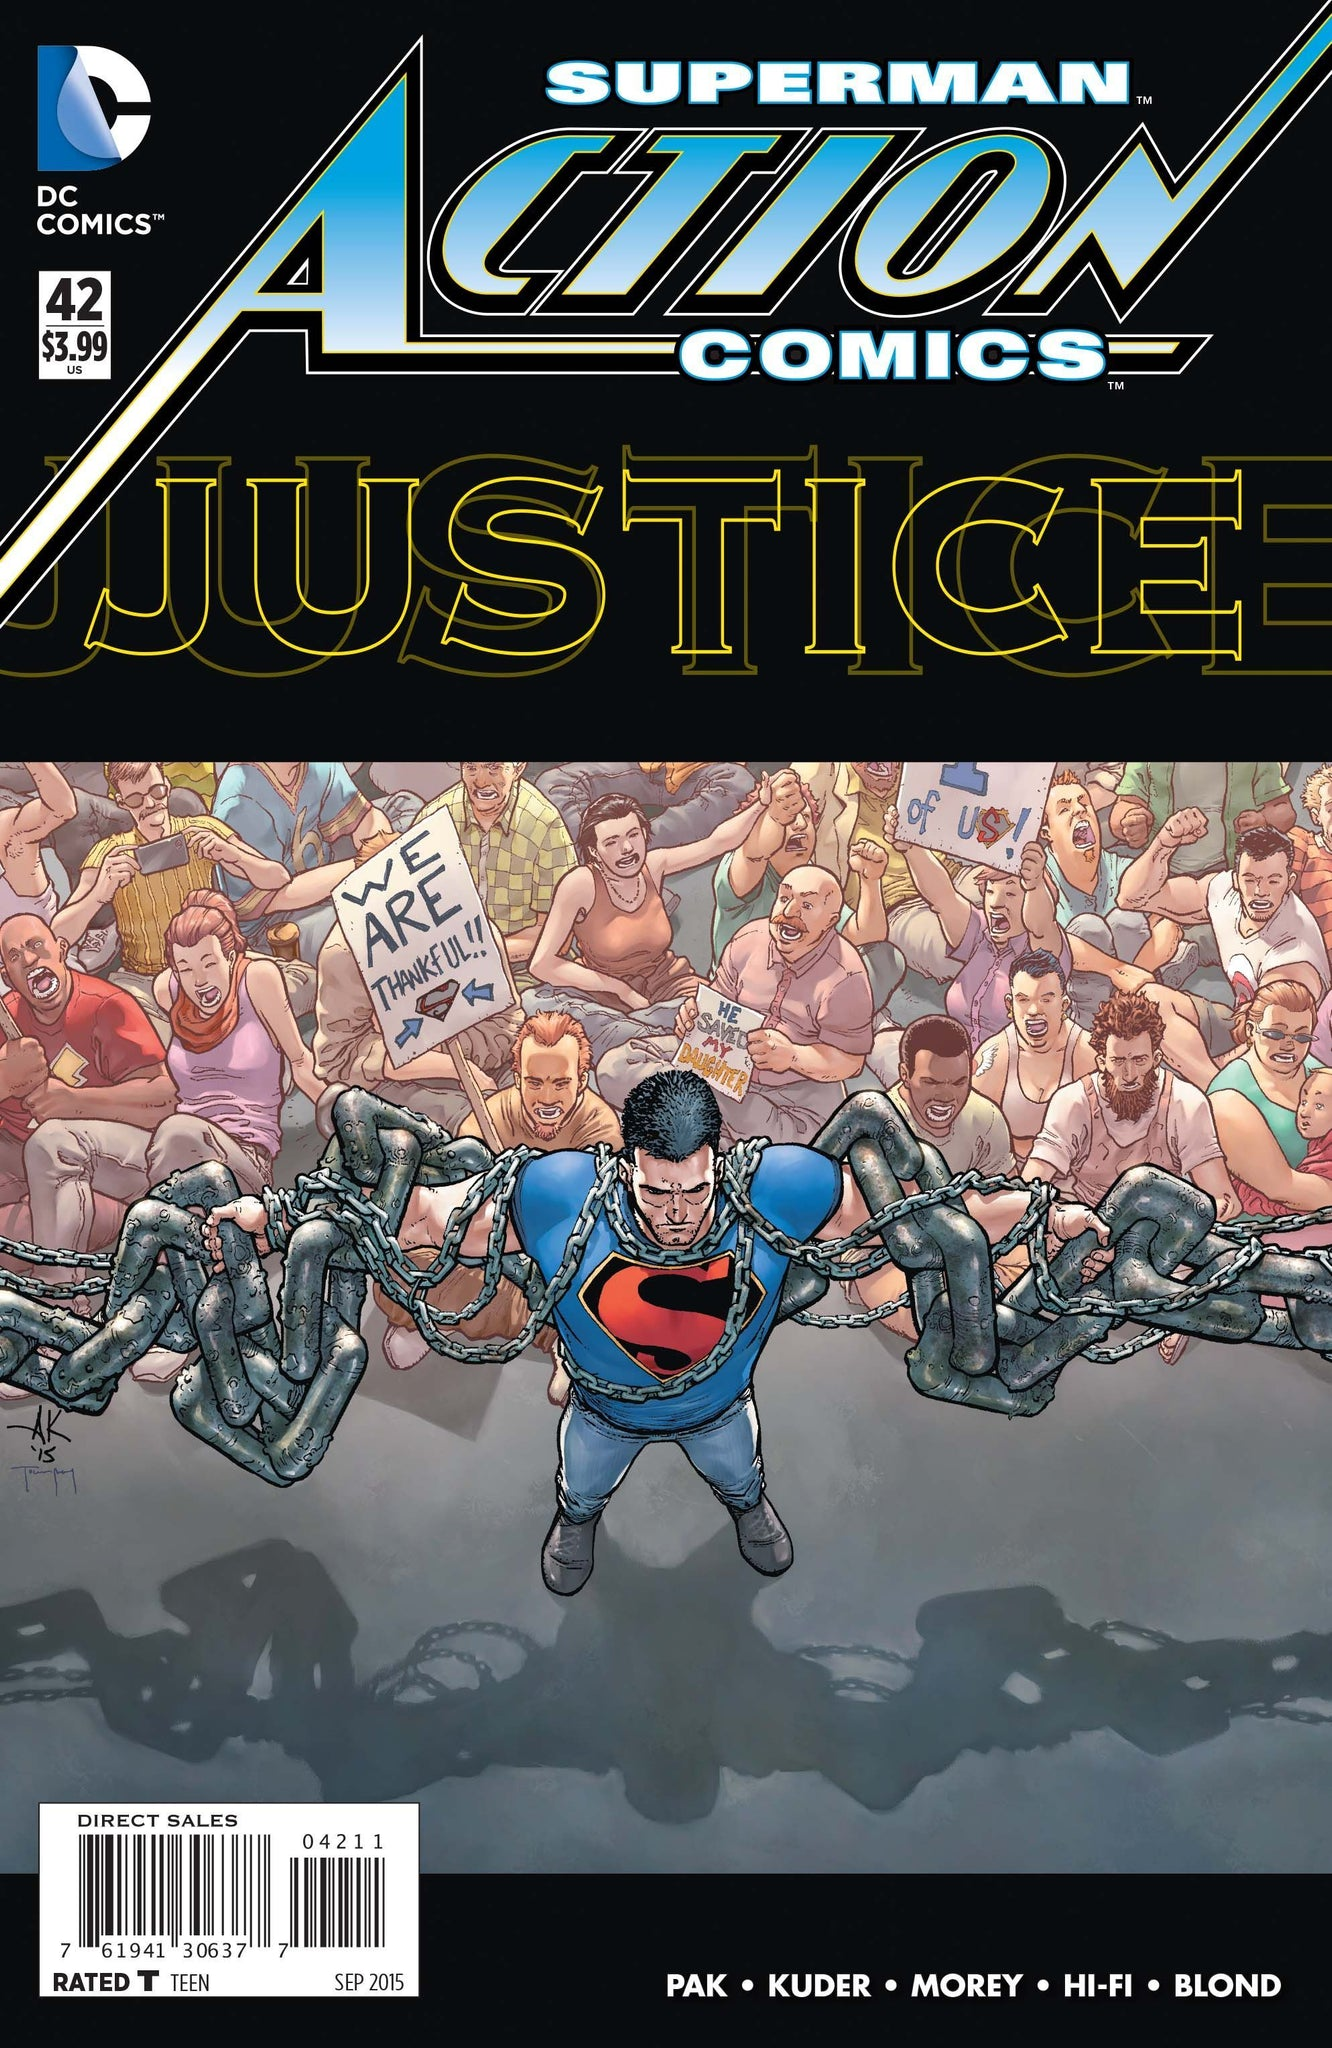 Action Comics (The New 52) #42